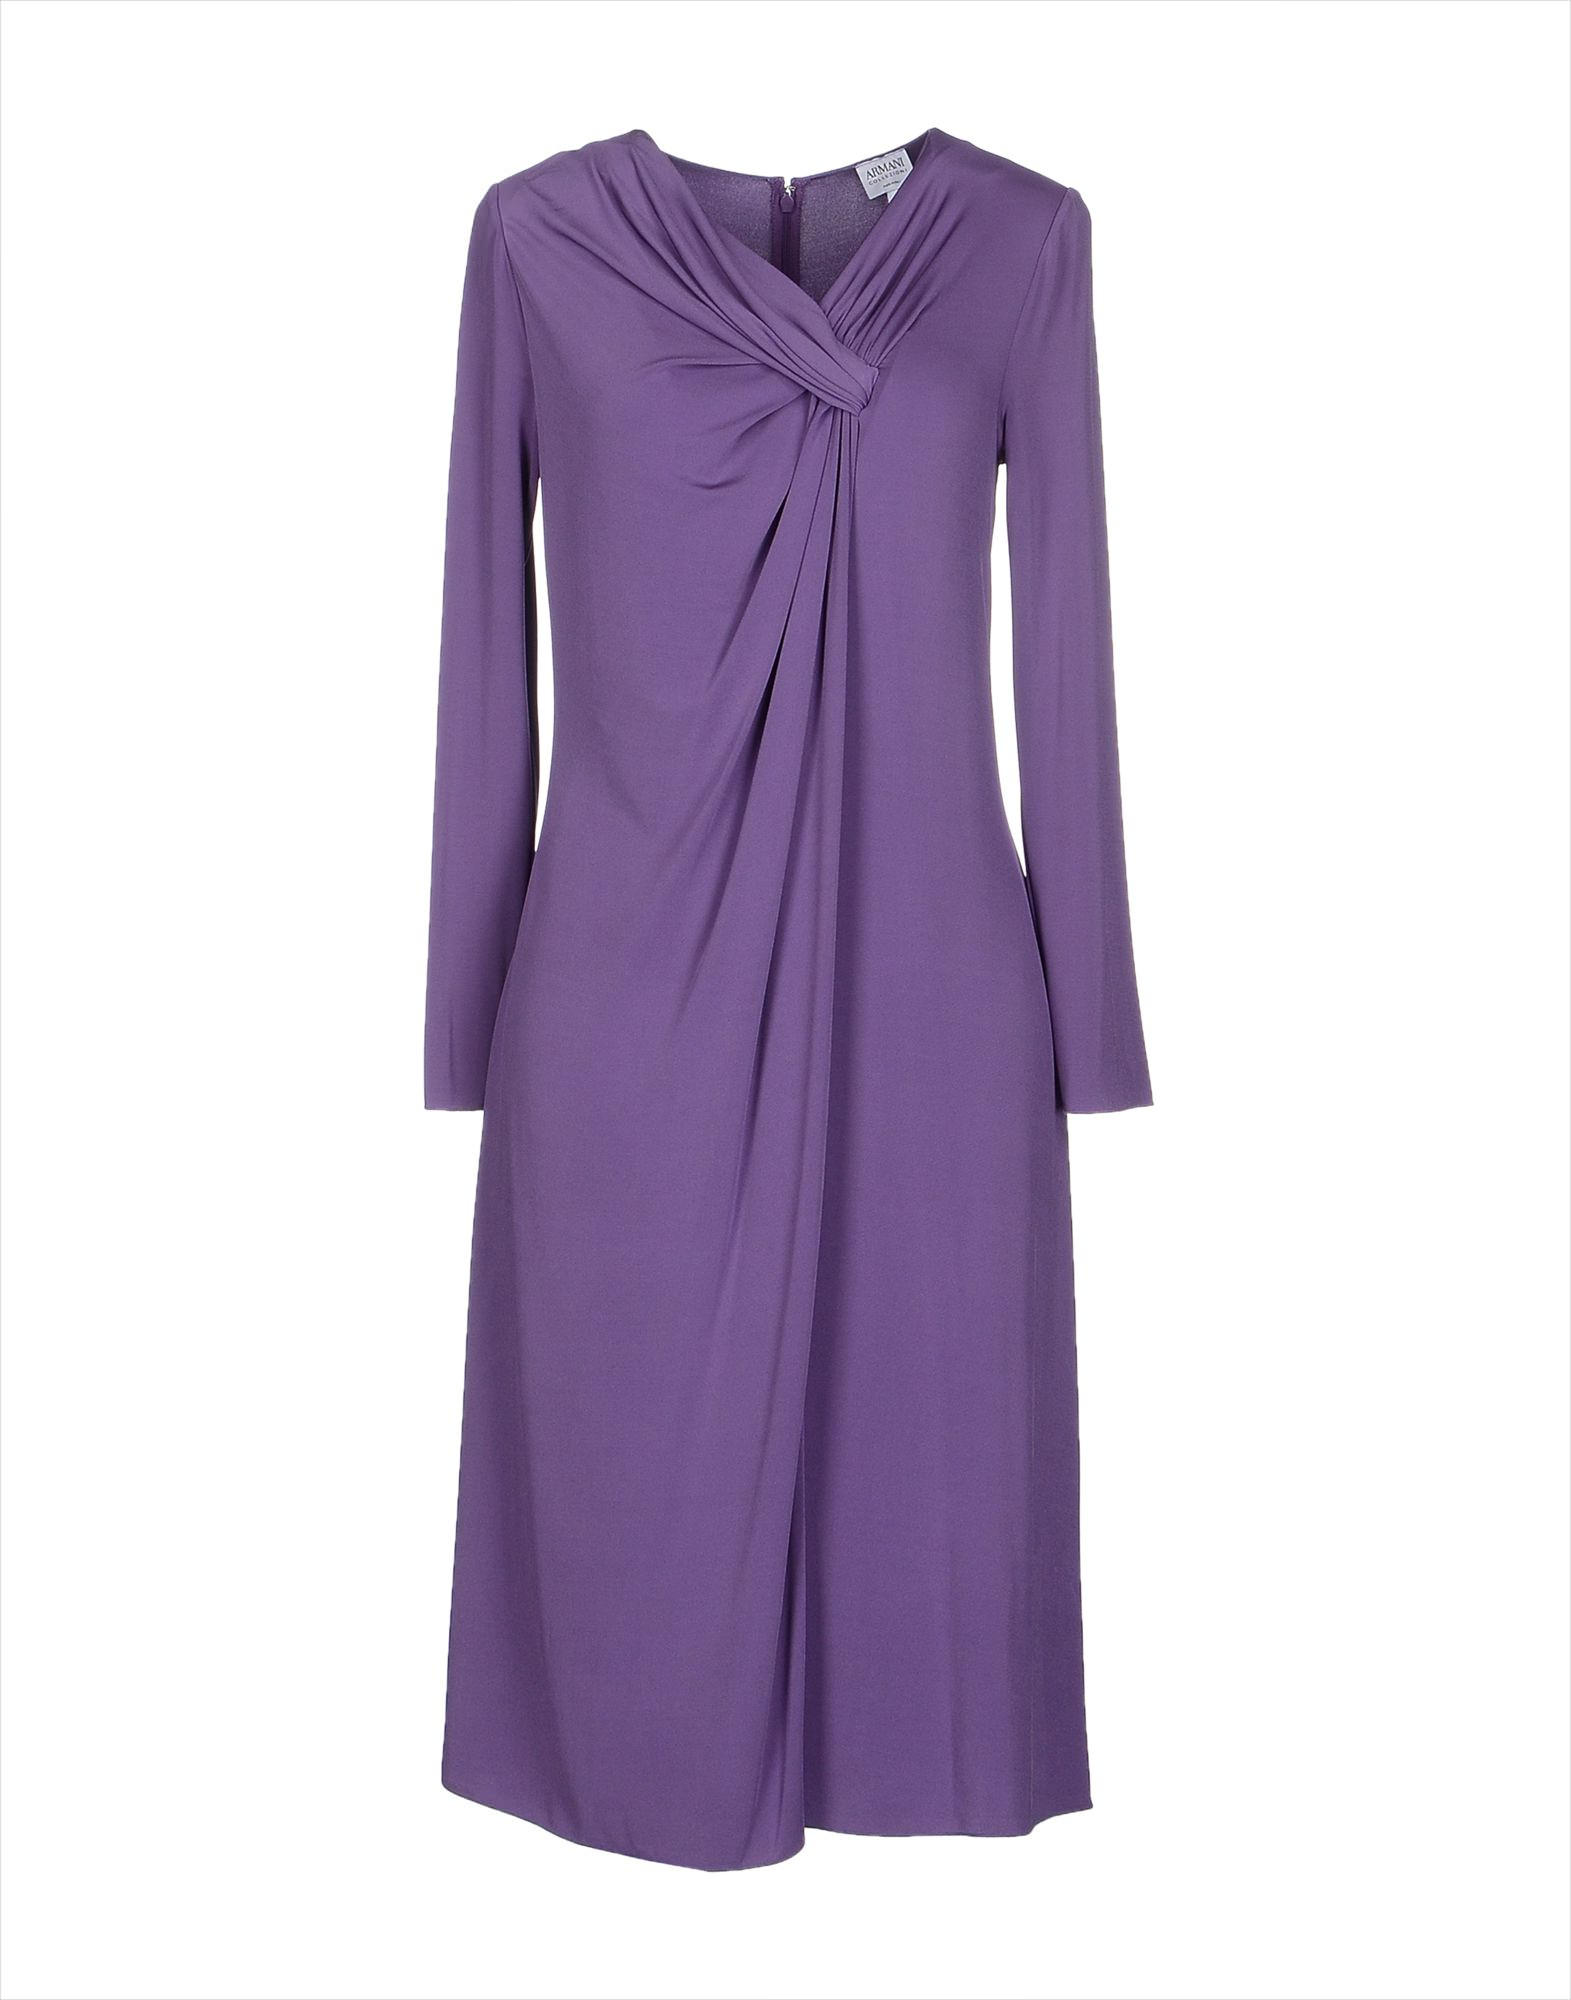 Armani Purple Colored Knee Length Dress